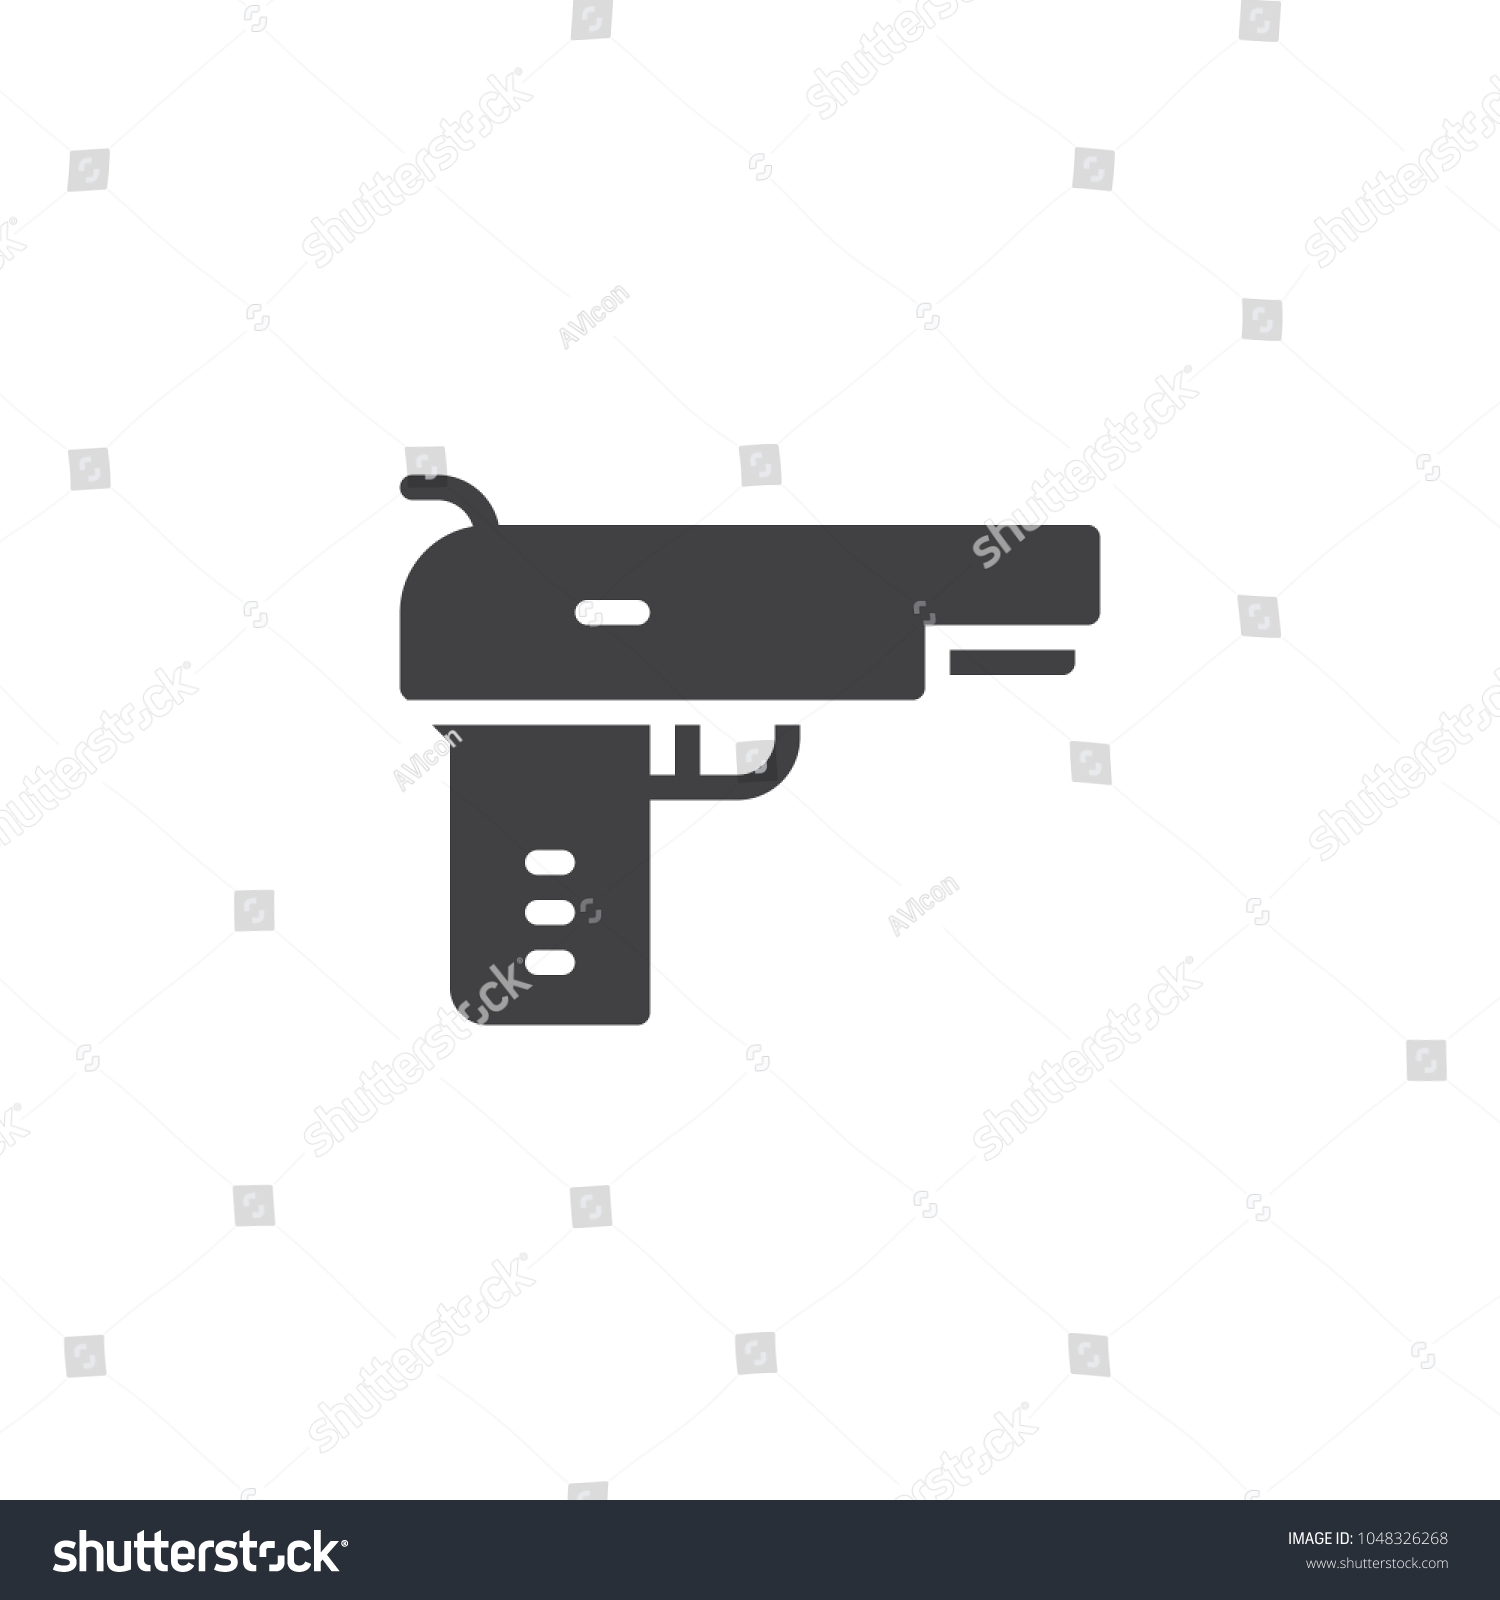 Pistol gun vector icon filled flat stock vector 1048326268 pistol gun vector icon filled flat sign for mobile concept and web design handgun biocorpaavc Images